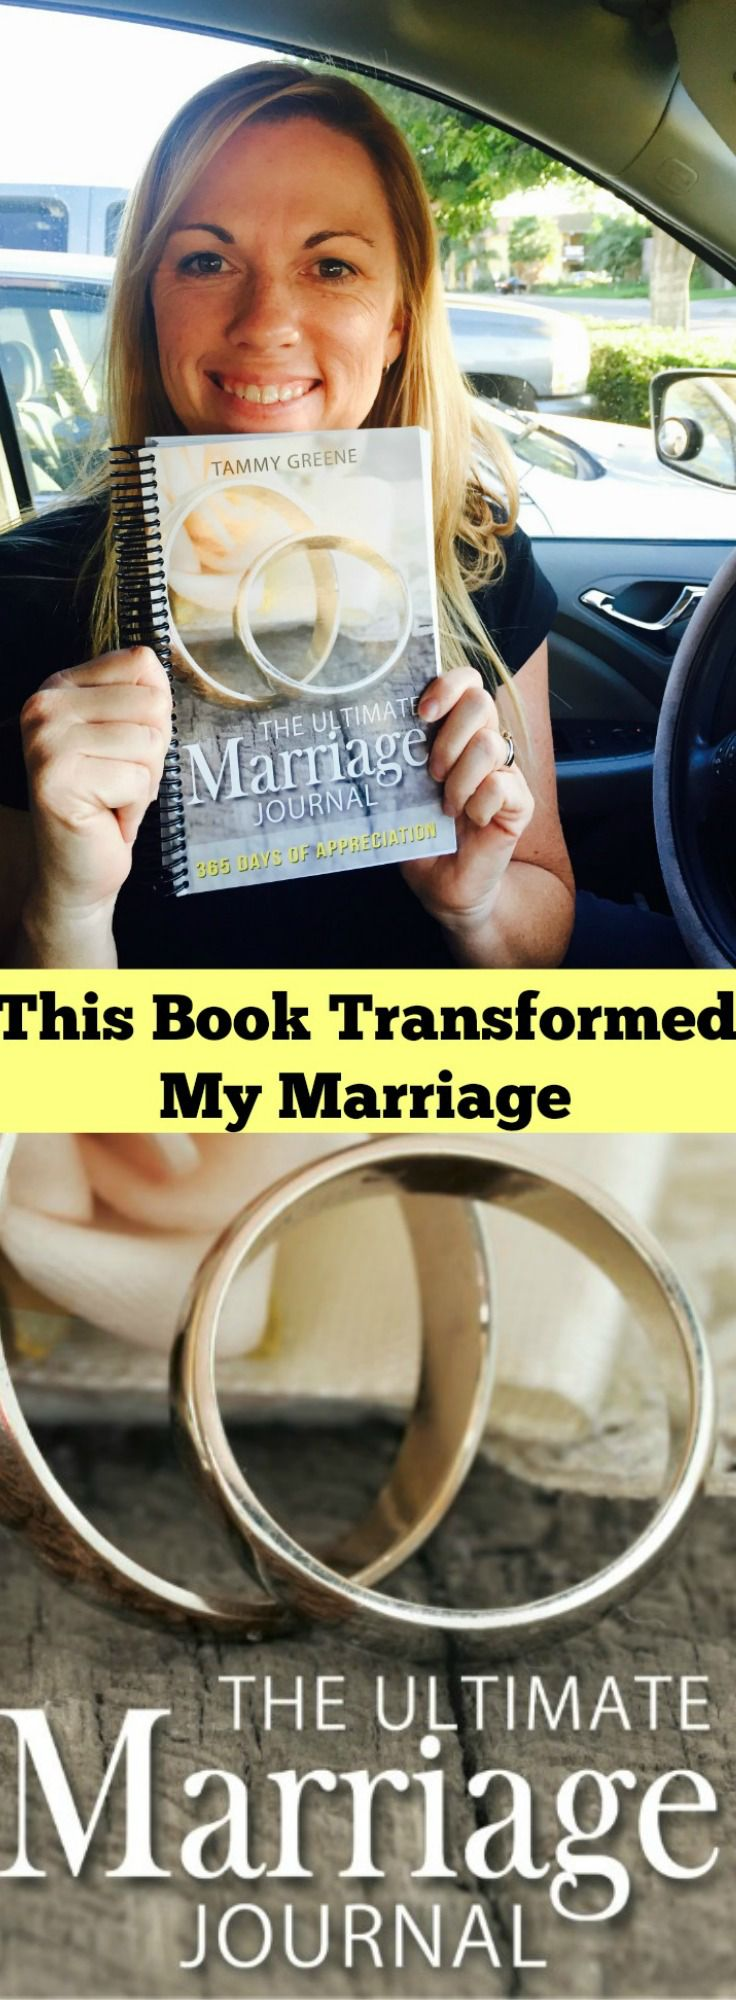 This book saved my marriage!  The Ultimate Marriage Journal will help transform the soul of your marriage into one of daily appreciation and gratitude.  Every marriage needs this!